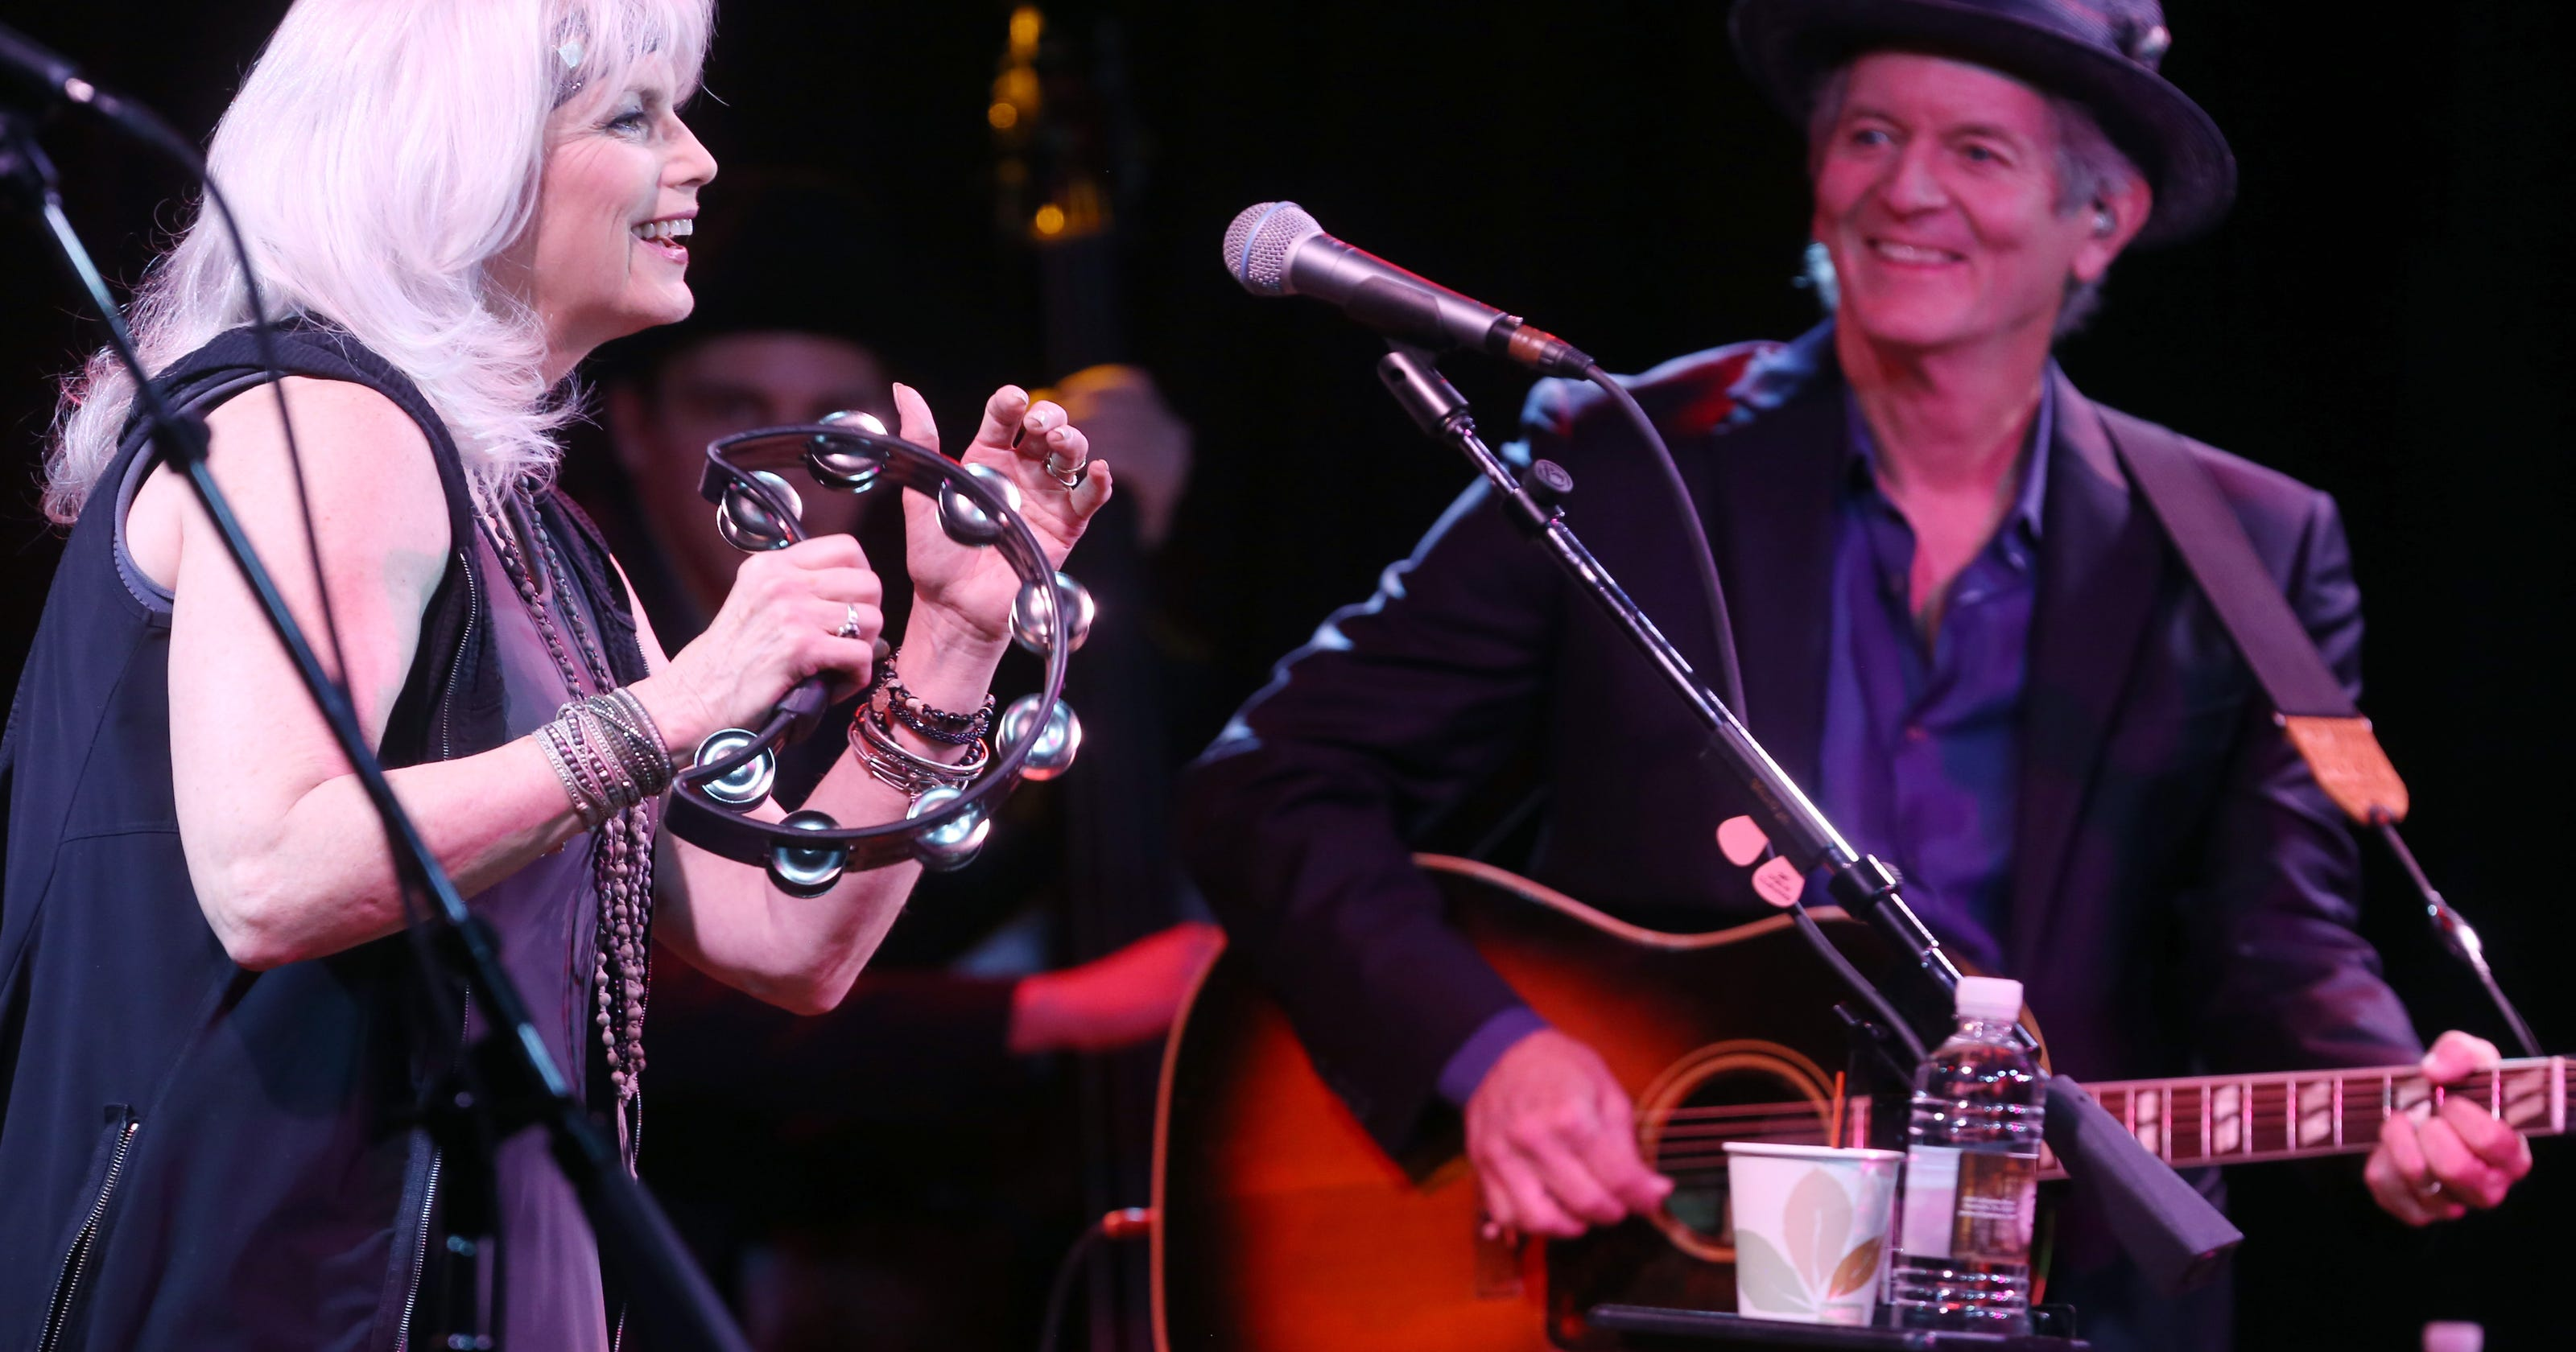 Emmylou harris rodney crowell wow sold out city winery stopboris Image collections